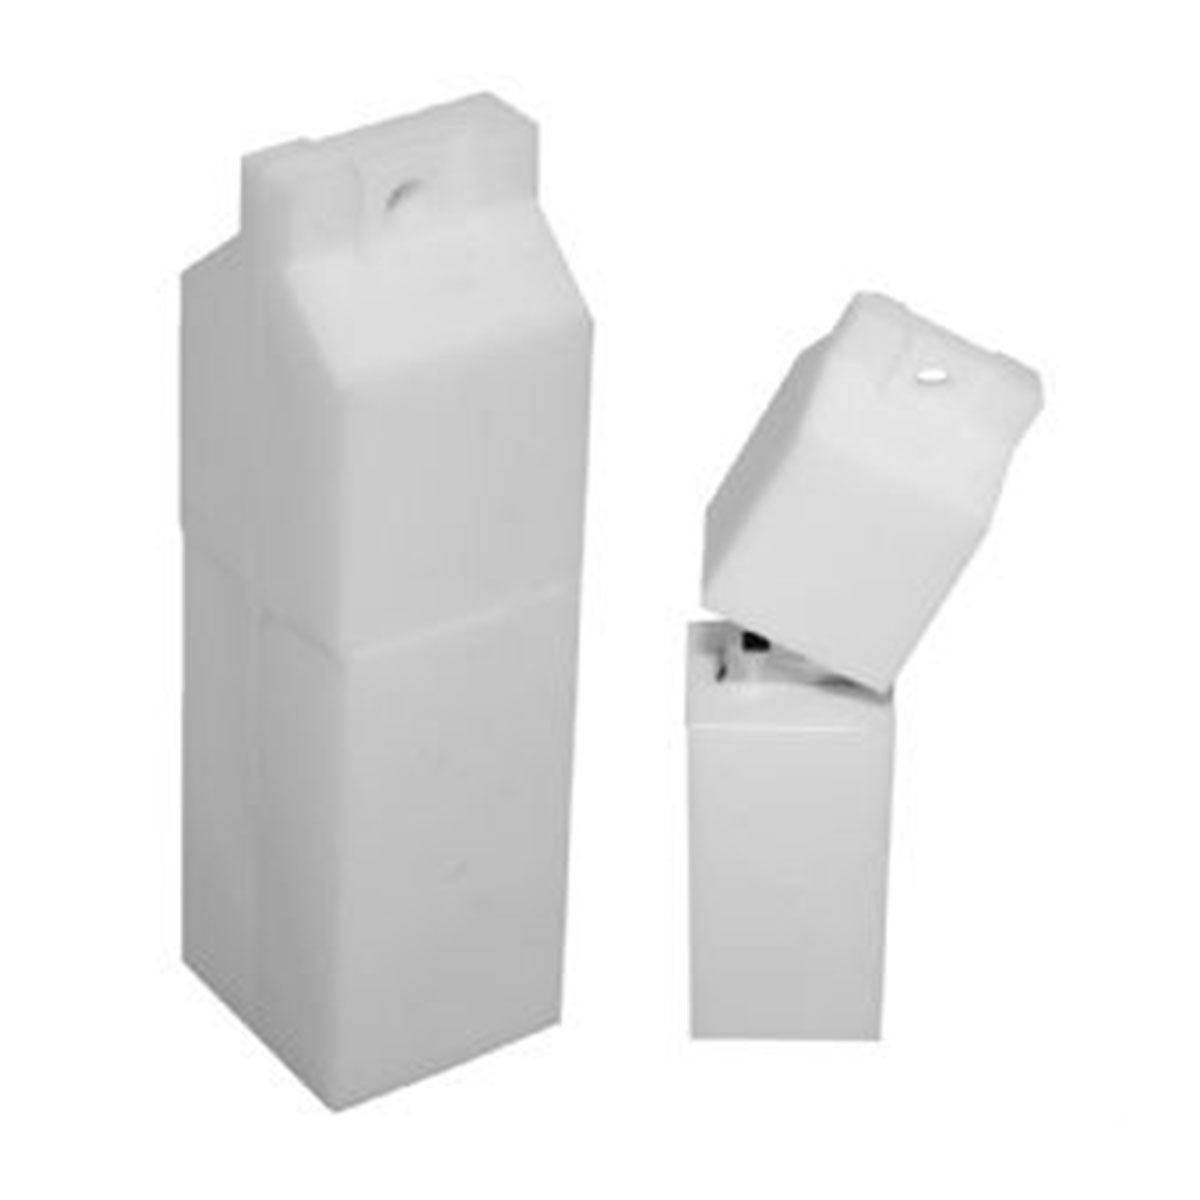 Carton PVC Flash Drive-You can change up to 2 of the base PVC colours and print your logo in 1-2 colours in 1 position.